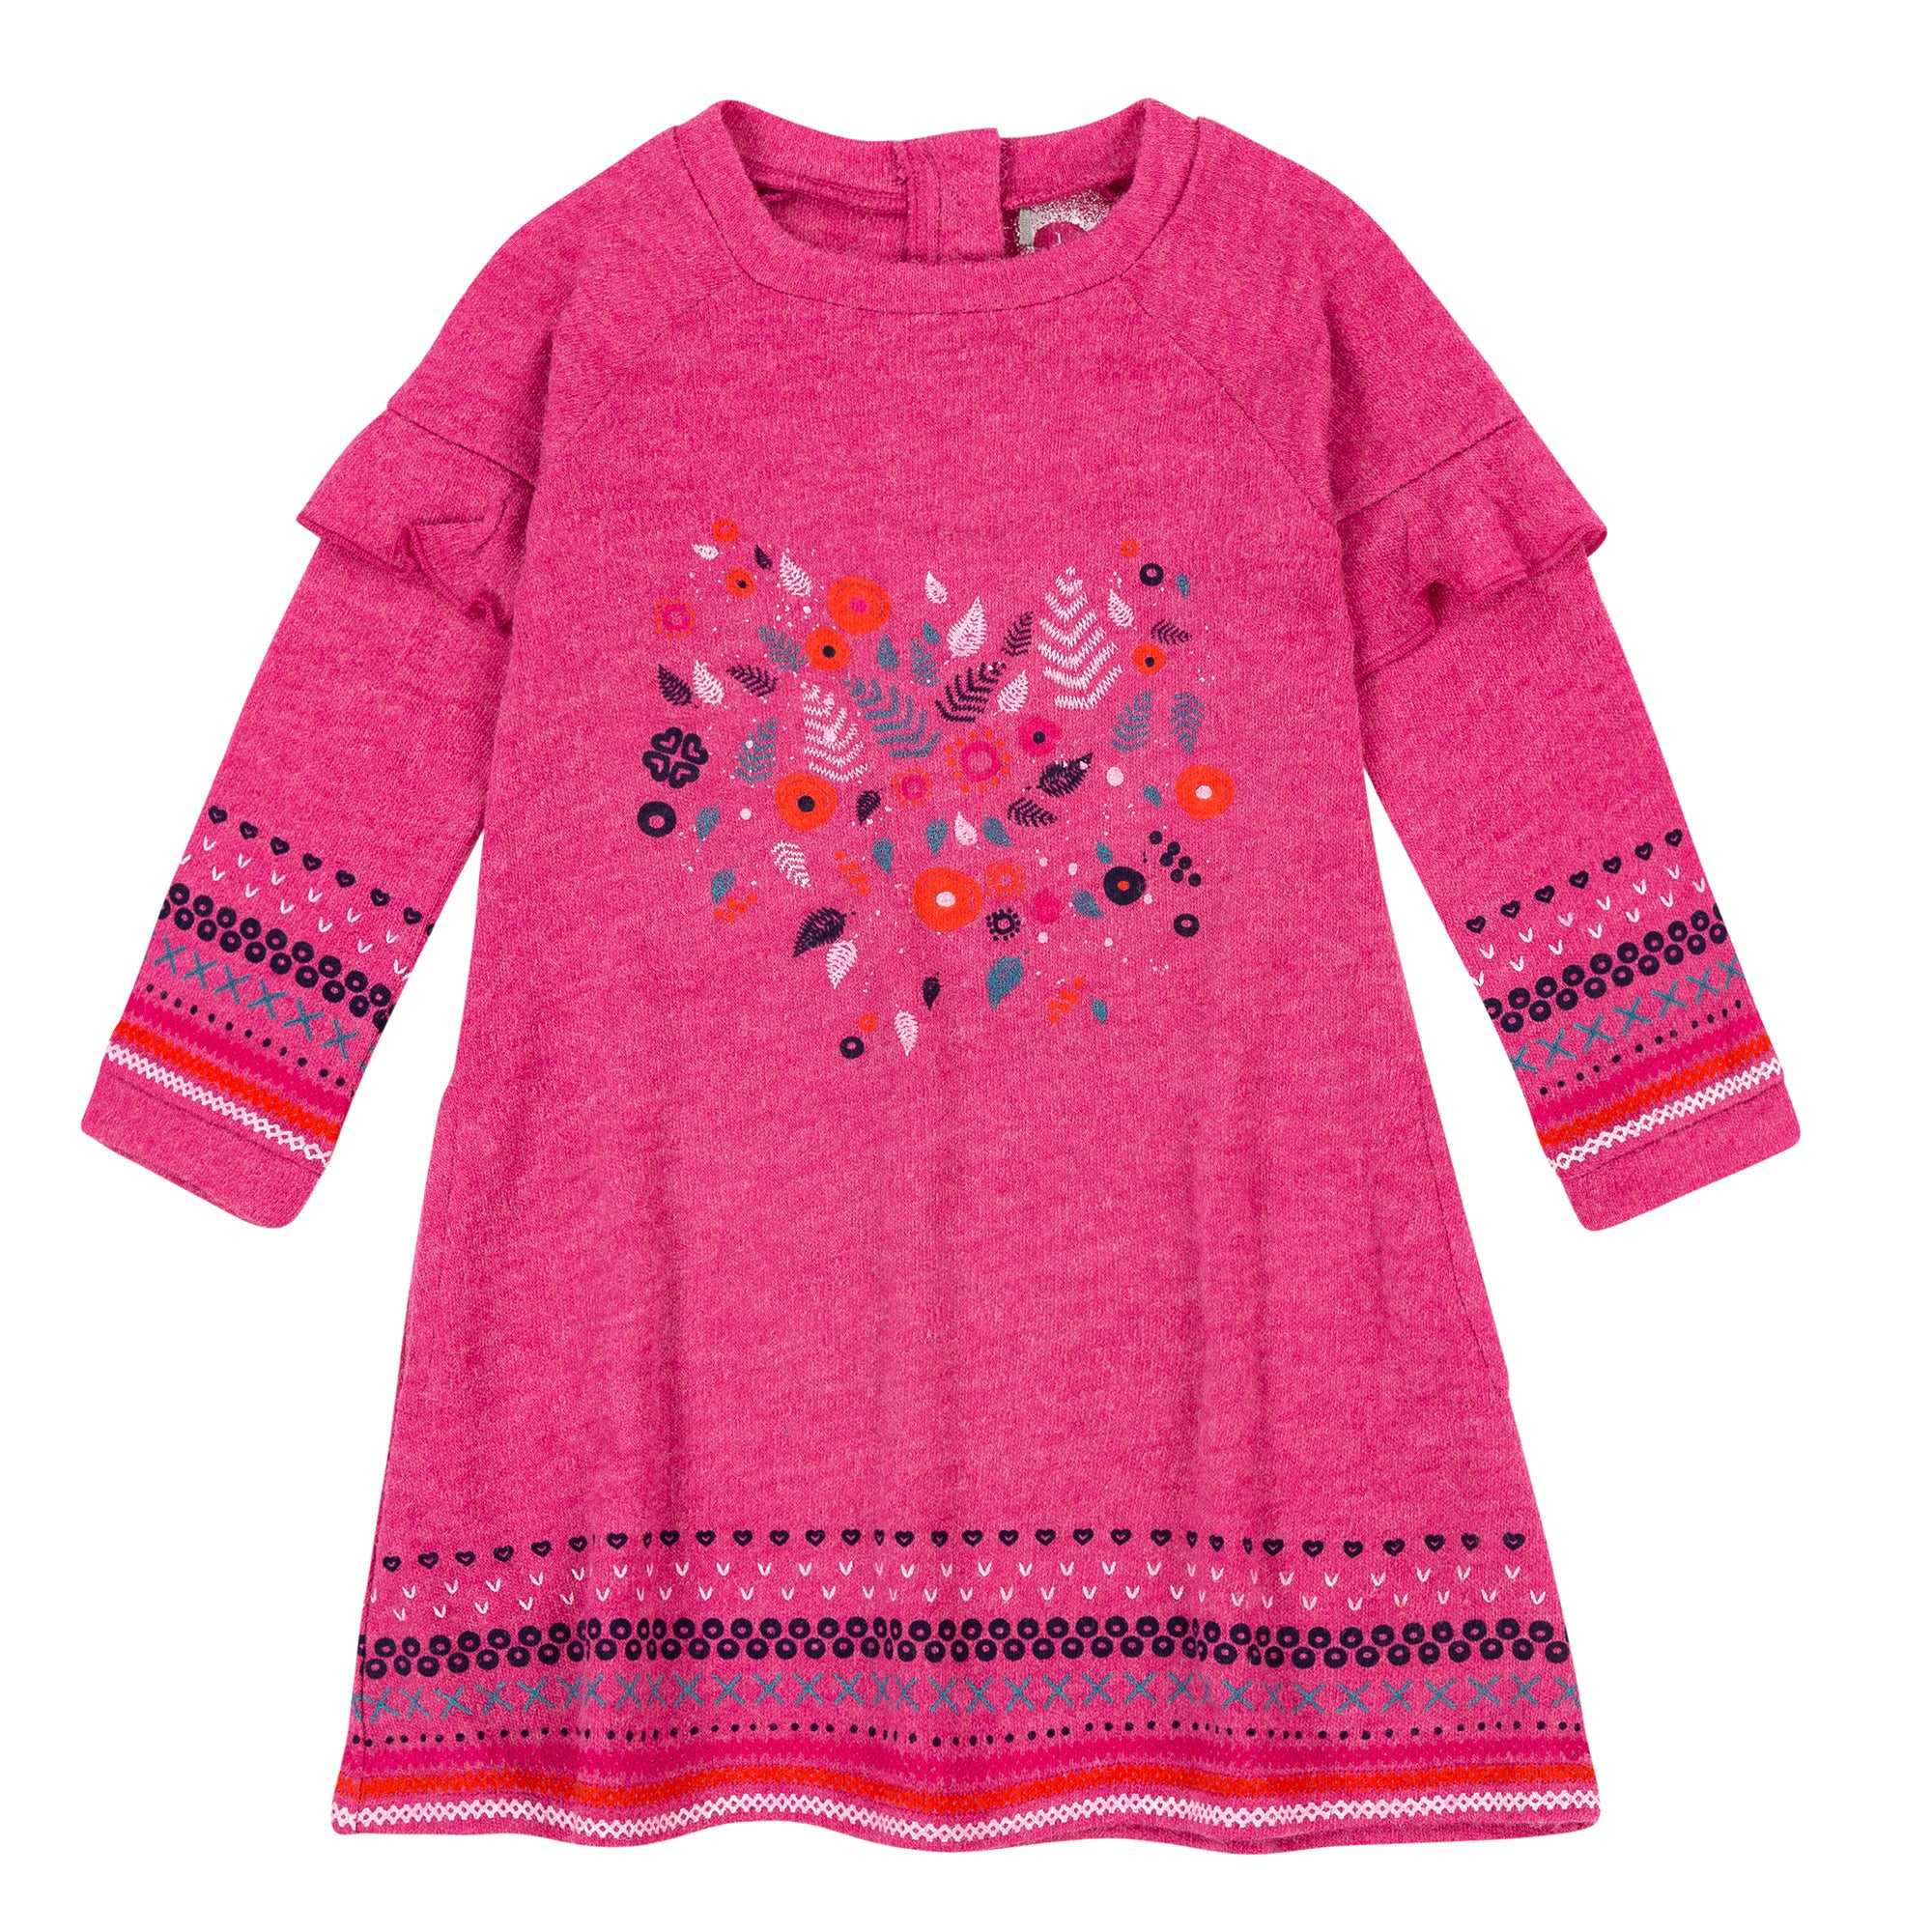 Girls Pink Brushed Knit Jersey Dress